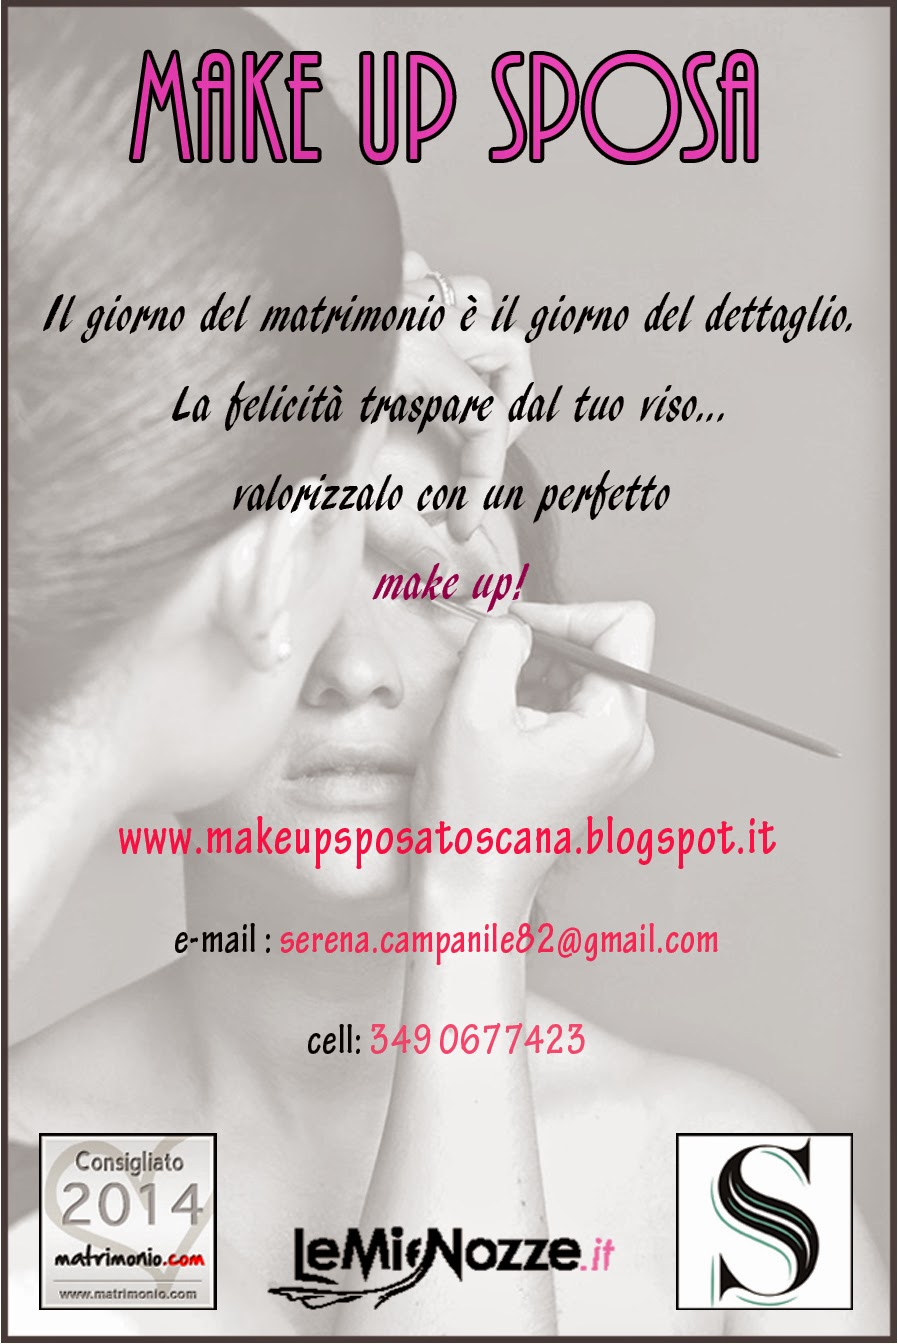 make up sposa toscana - serena campanile